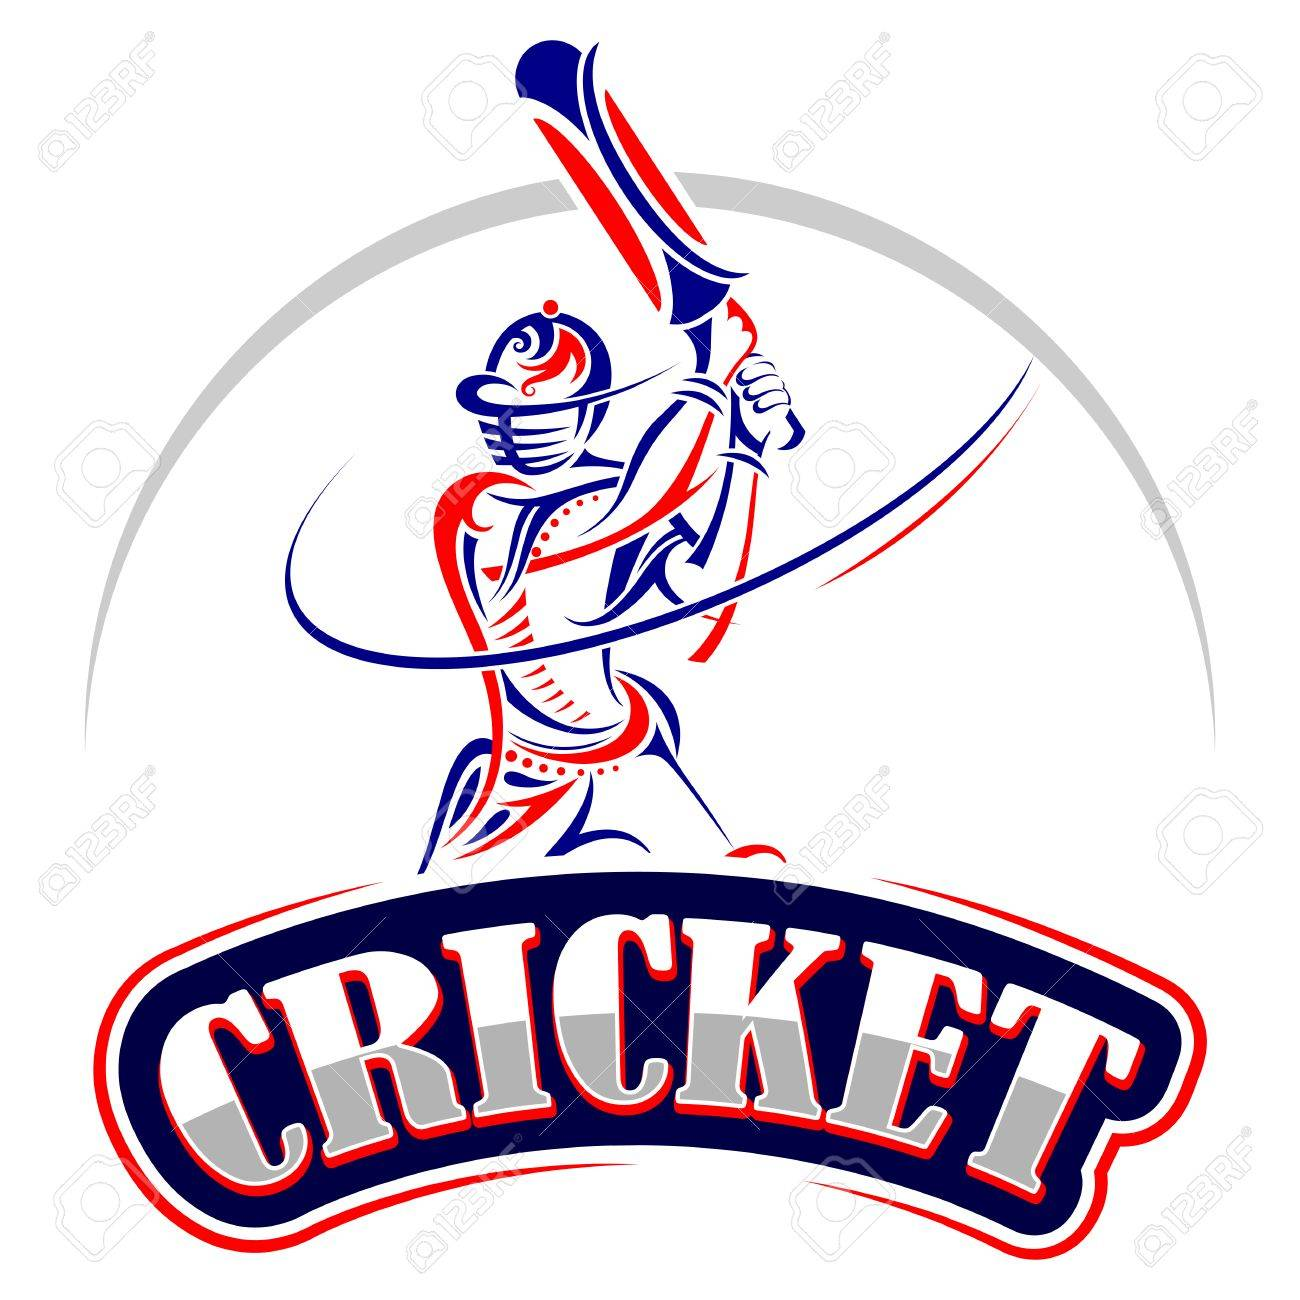 Cricket player playing with bat - 37183872